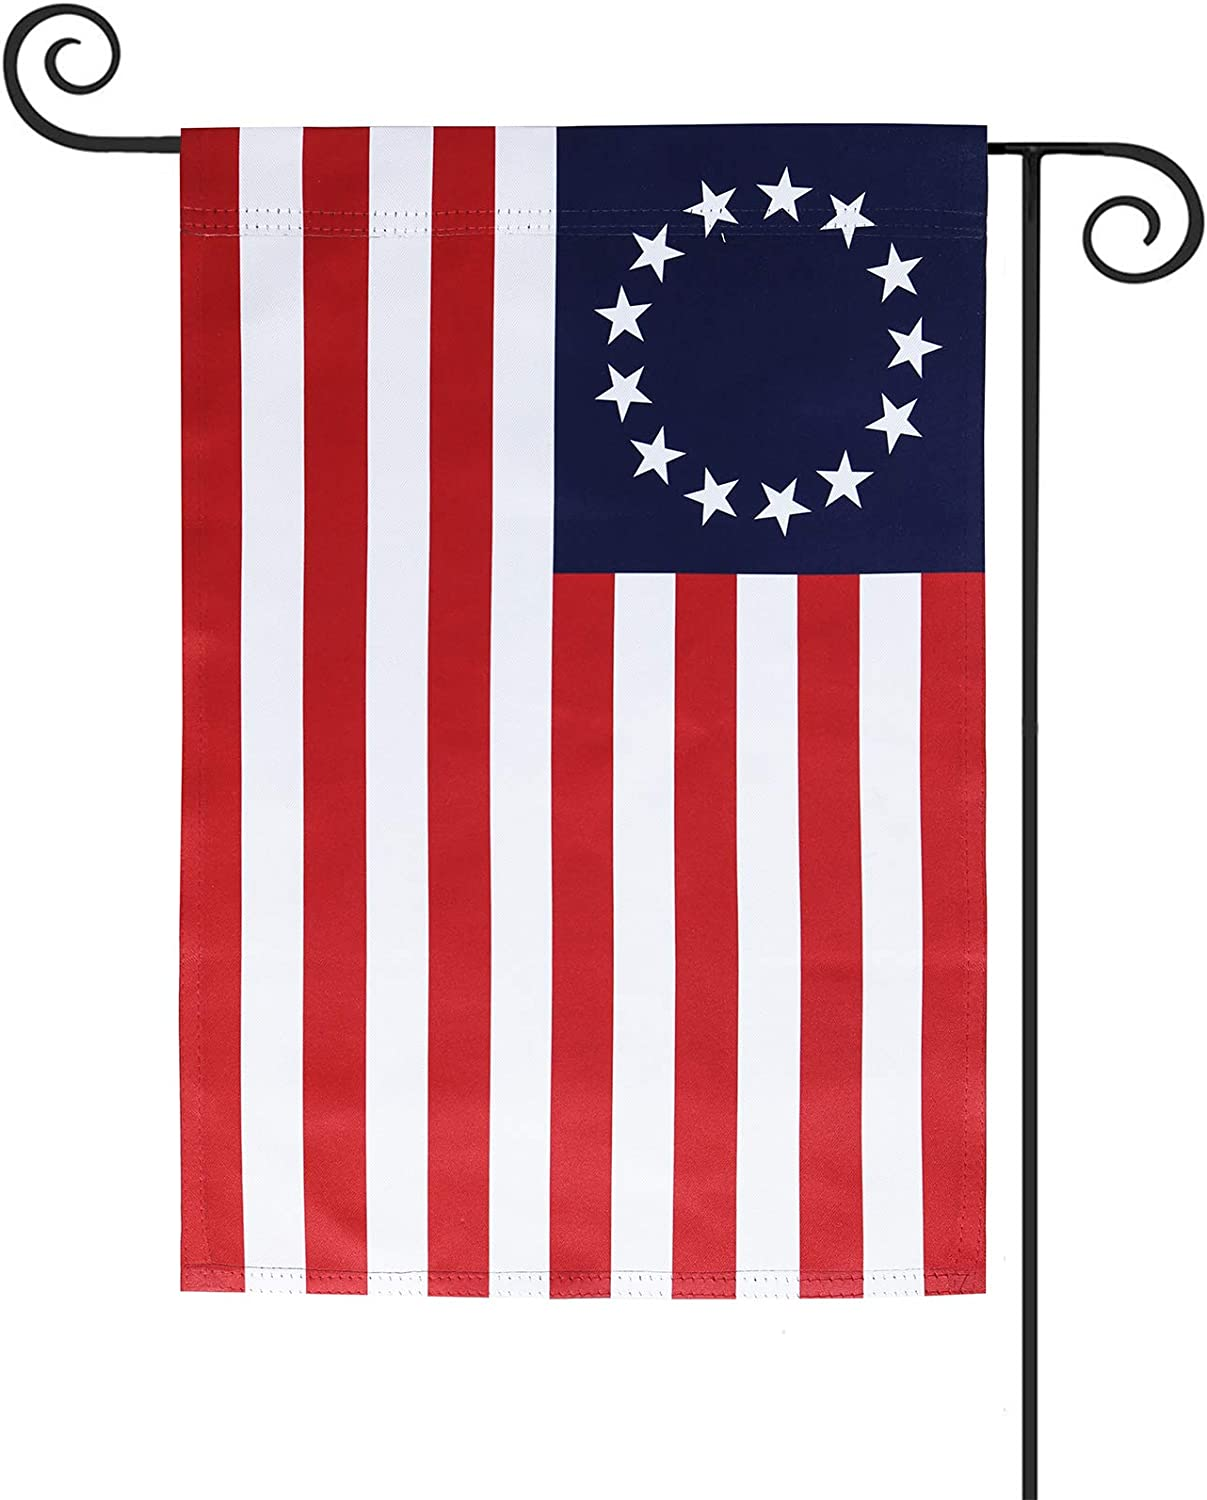 KPP 12x18 inch American Garden Flag, US 13 Star Betsy Ross Garden Flag, Premium Double-Sided Outdoor Yard Lawn Small Decor (12 x 18 inch)